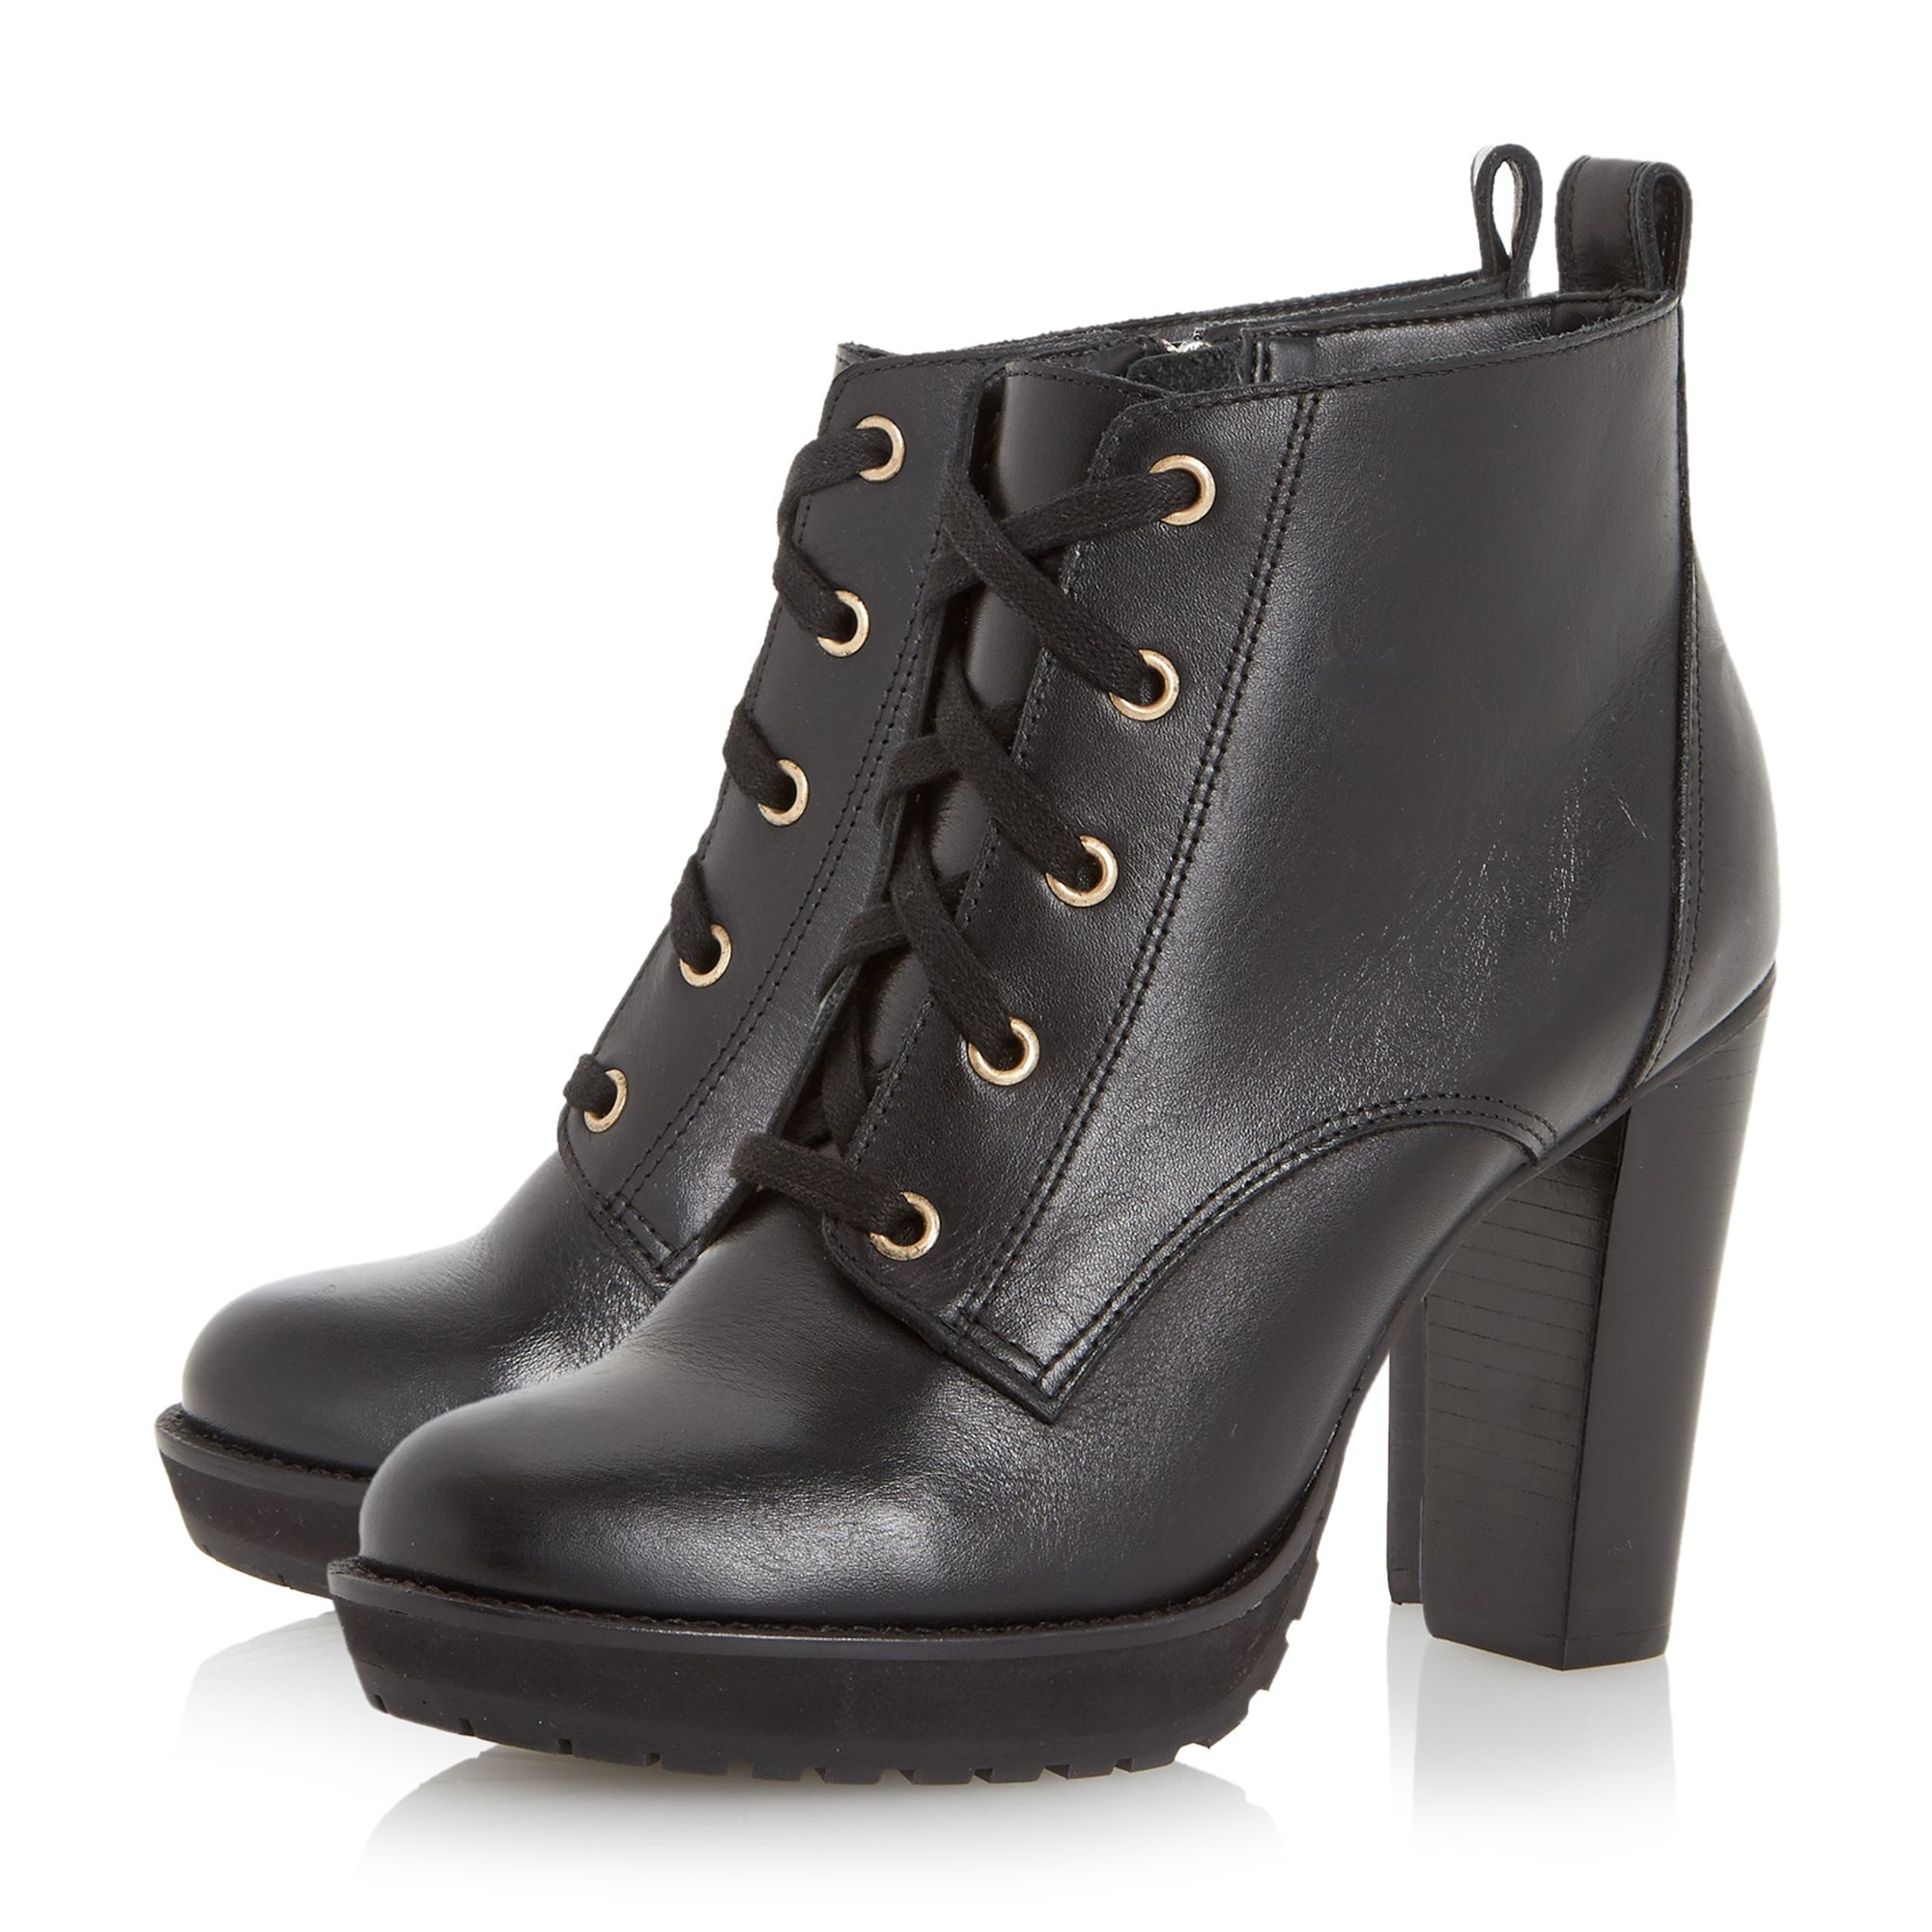 Dune Onslow Stacked High Heel Lace Up Ankle Boot in Black | Lyst